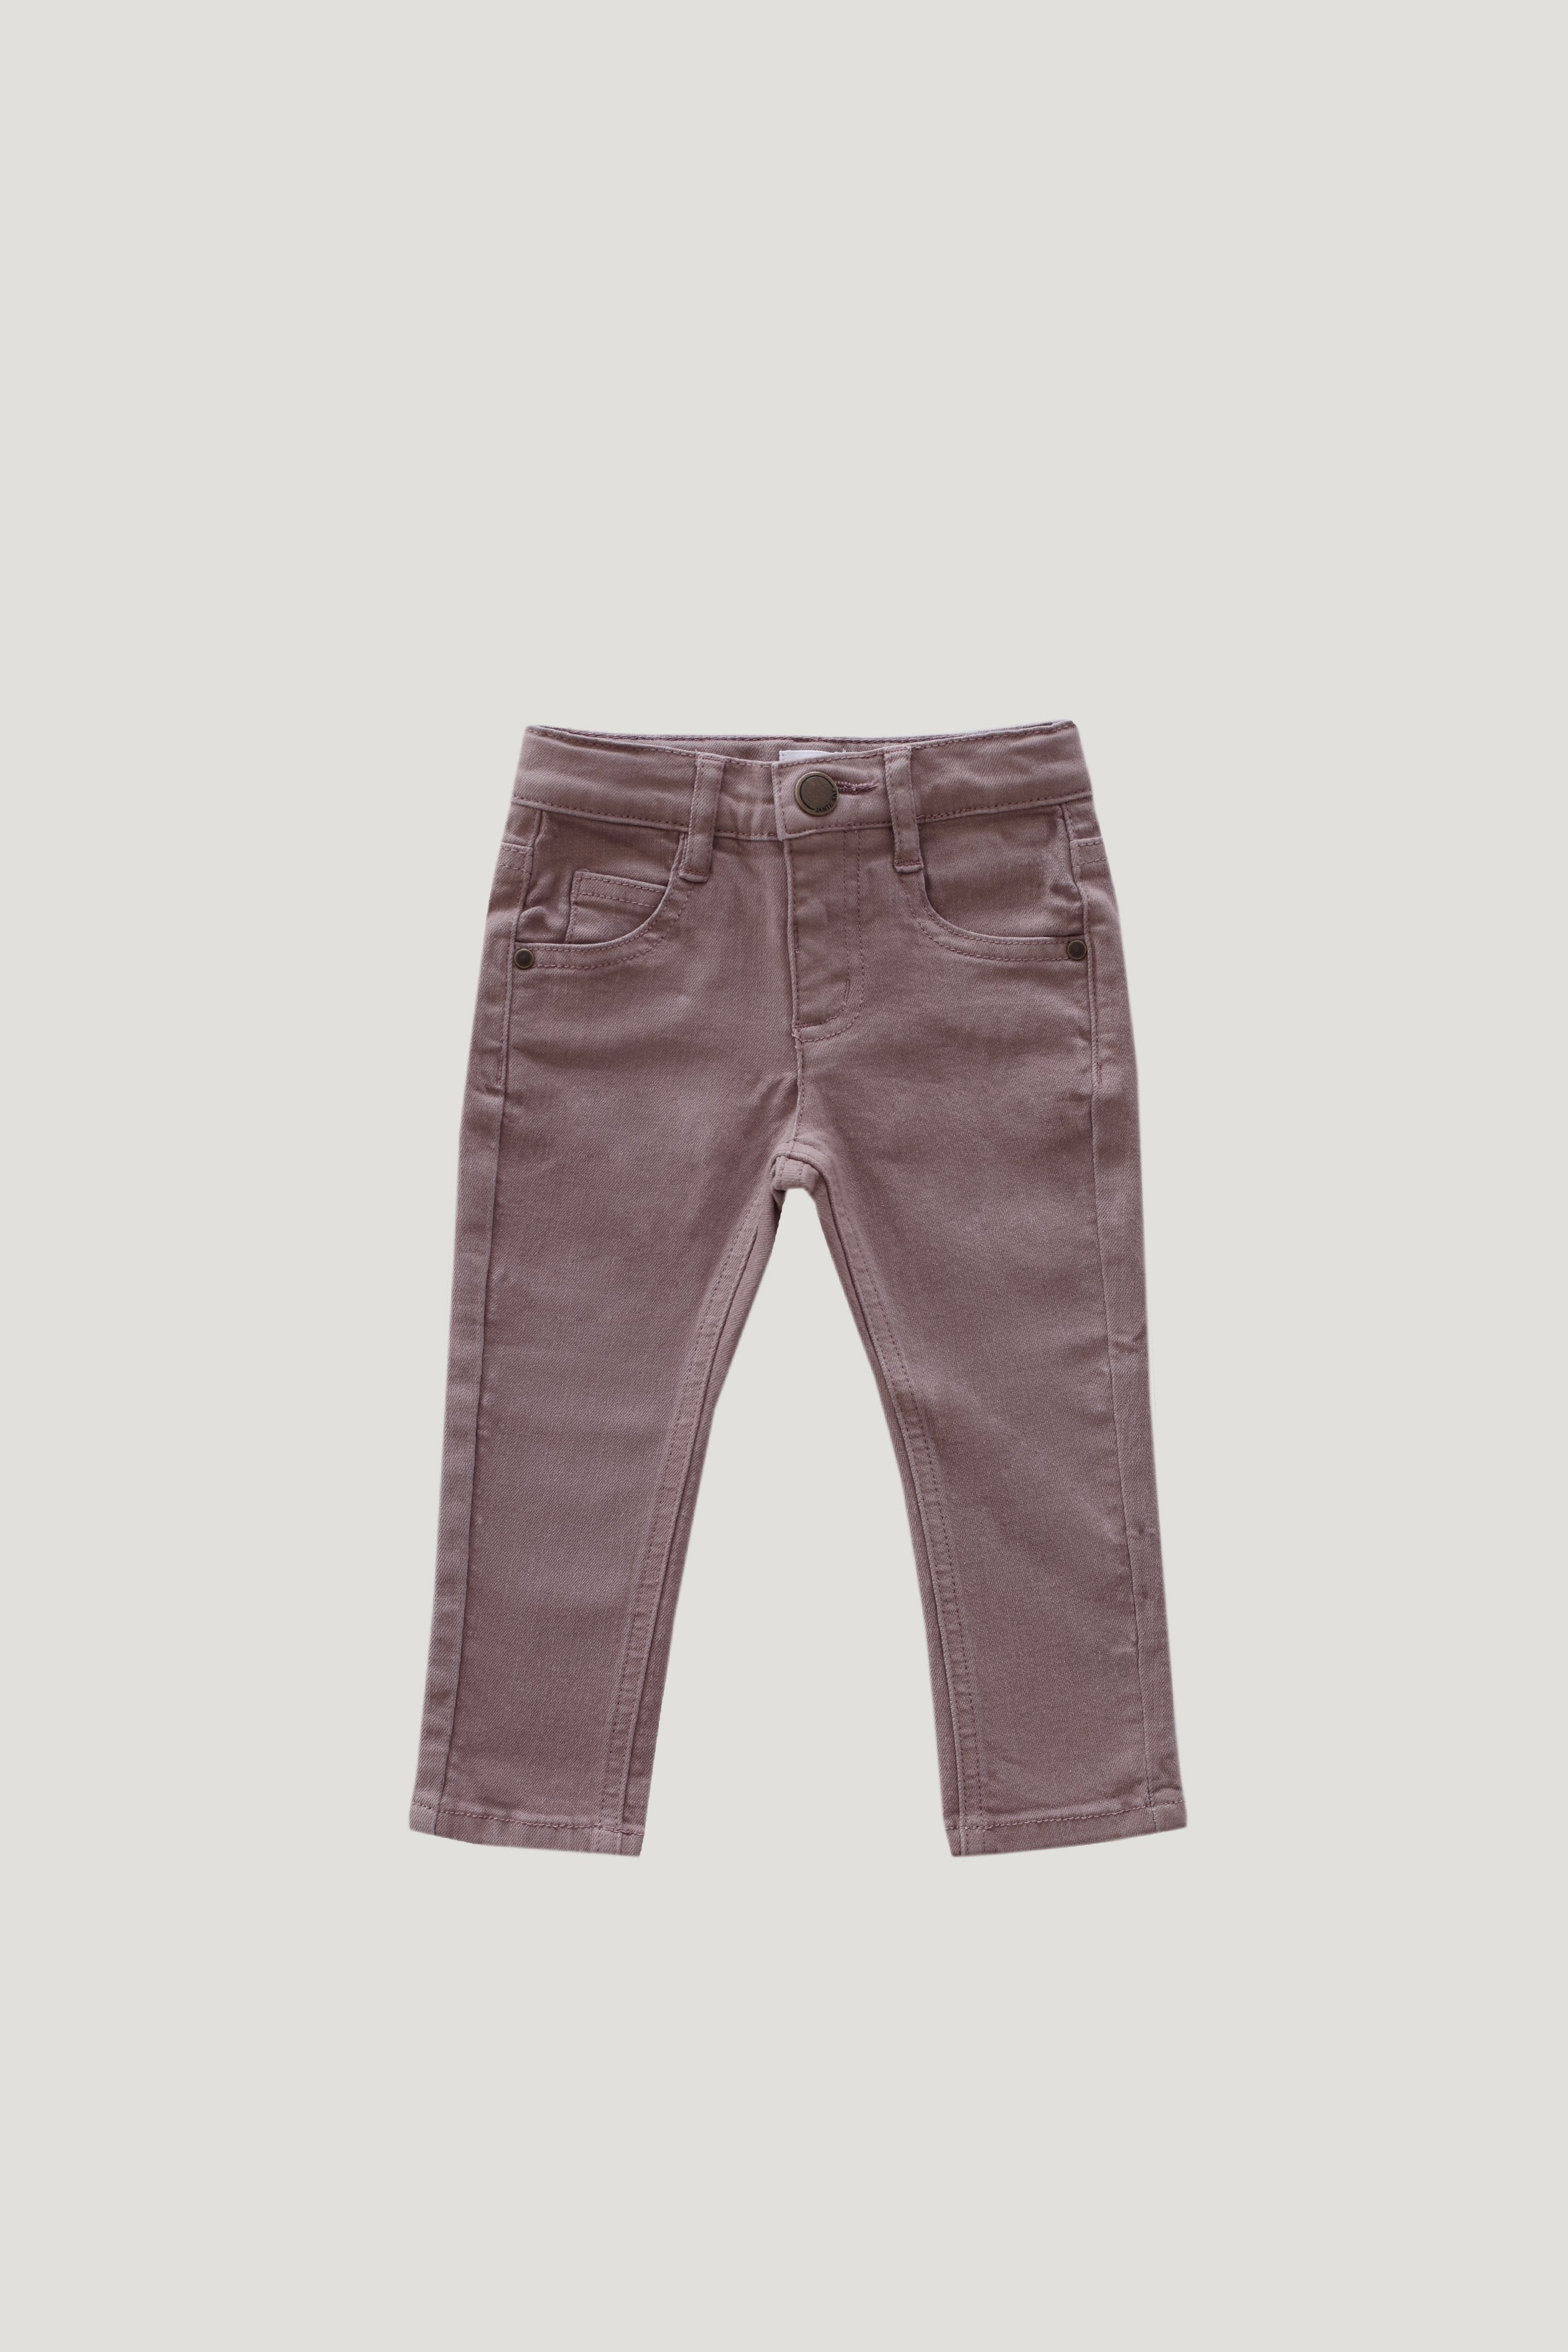 Slim Fit Jean - Periwinkle